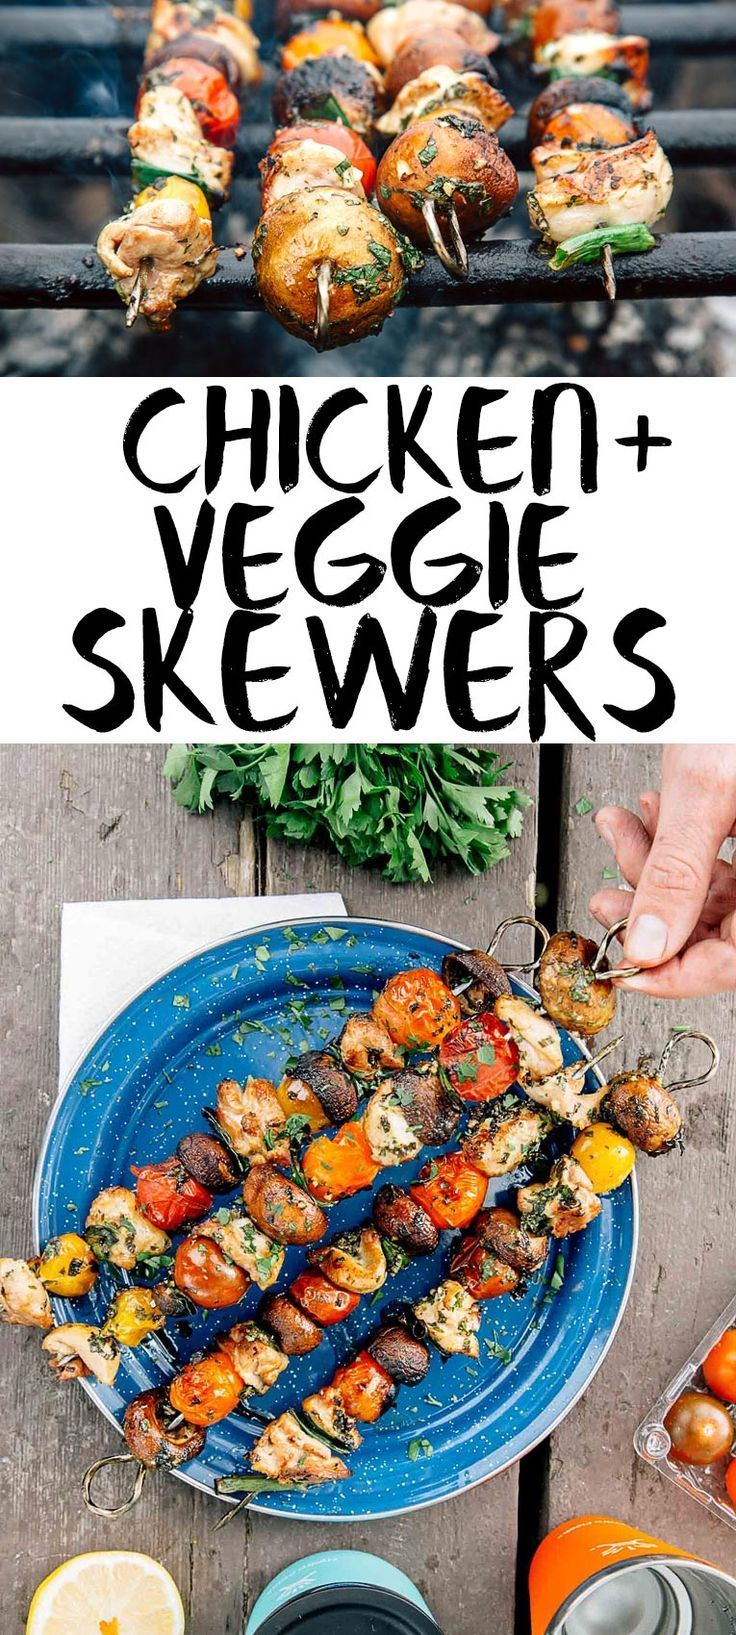 Grilled Chicken Veggie Skewers Healthy Camping MealsEasy